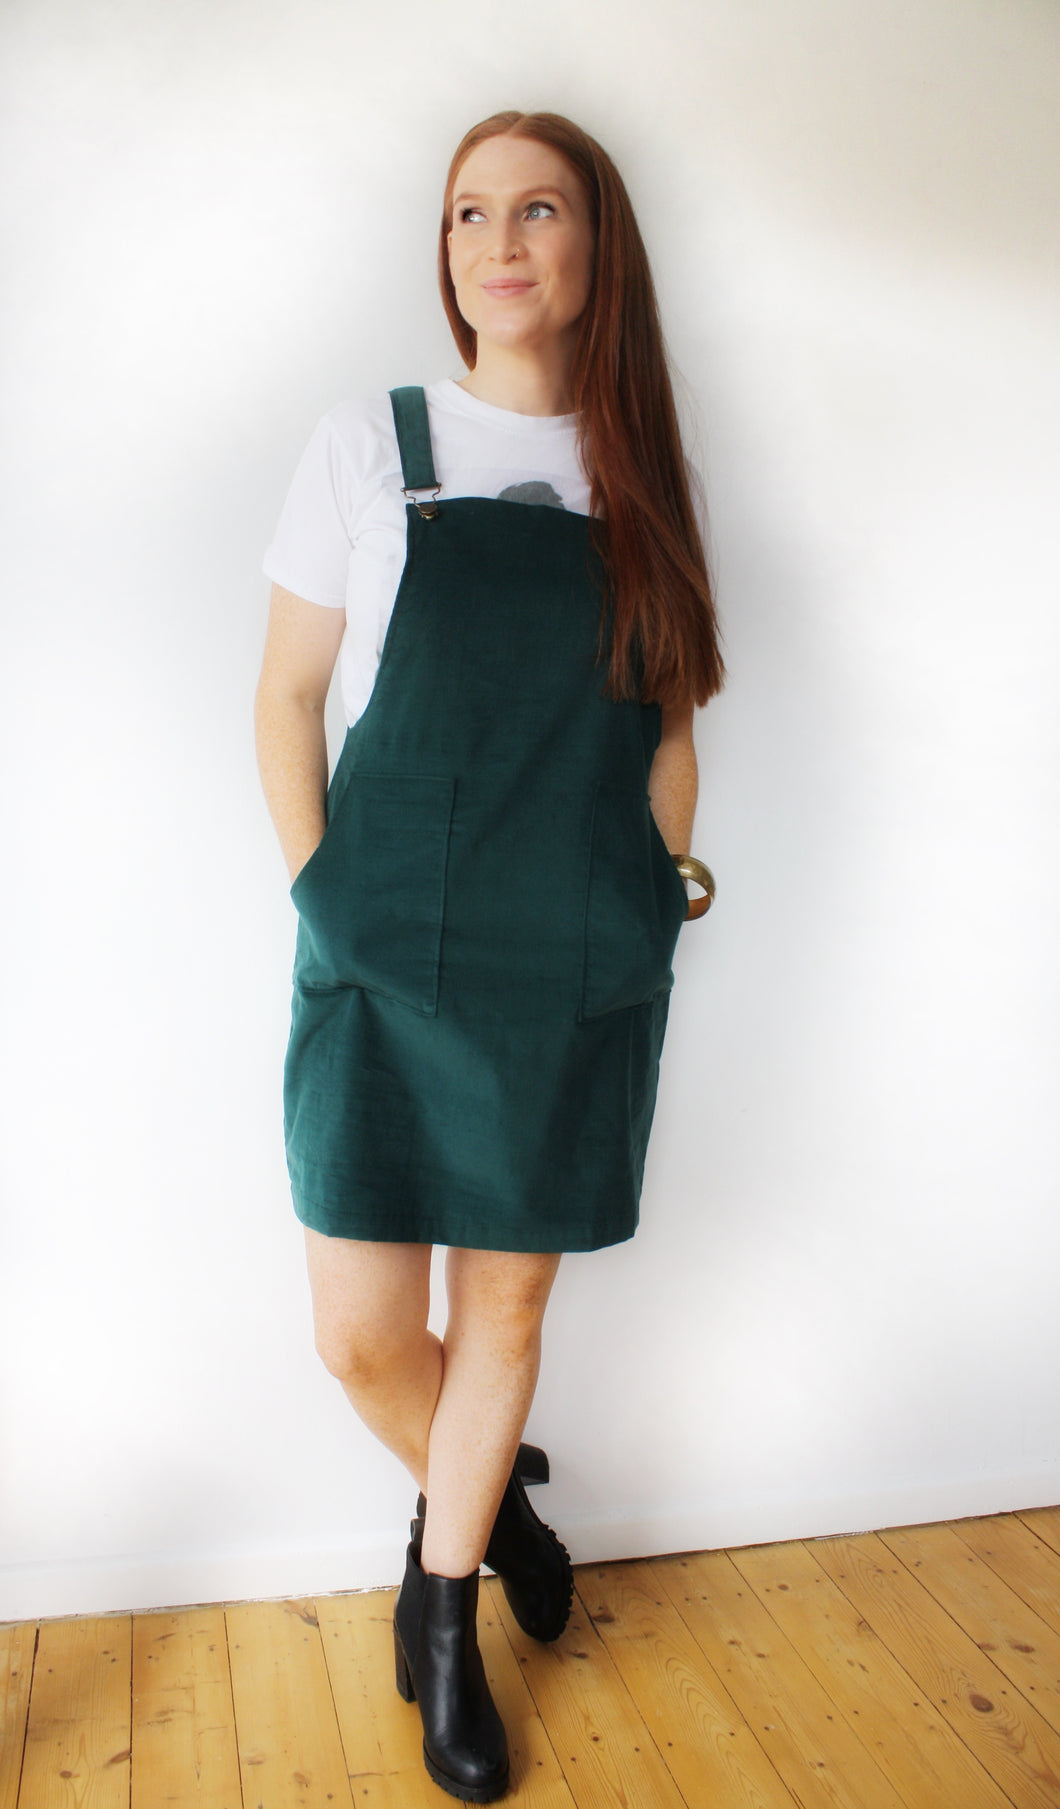 Breastfeeding Dress Pinfore Dress Needlecord Cotton Green sustainable fashion made in the UK